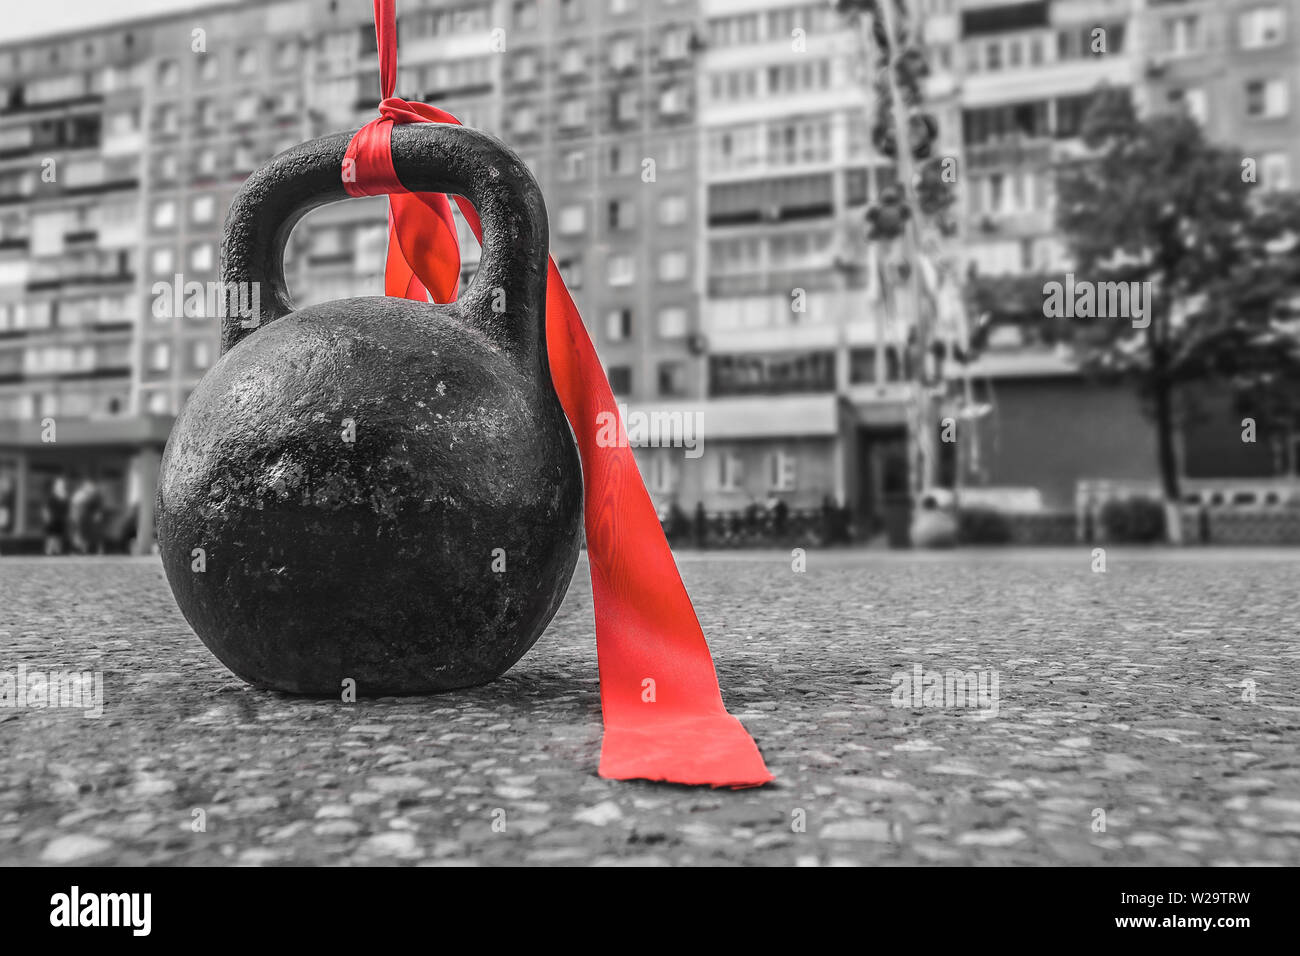 Sports equipment with a red ribbon for bodybuilding is on the asphalt during a sports holiday - Stock Image